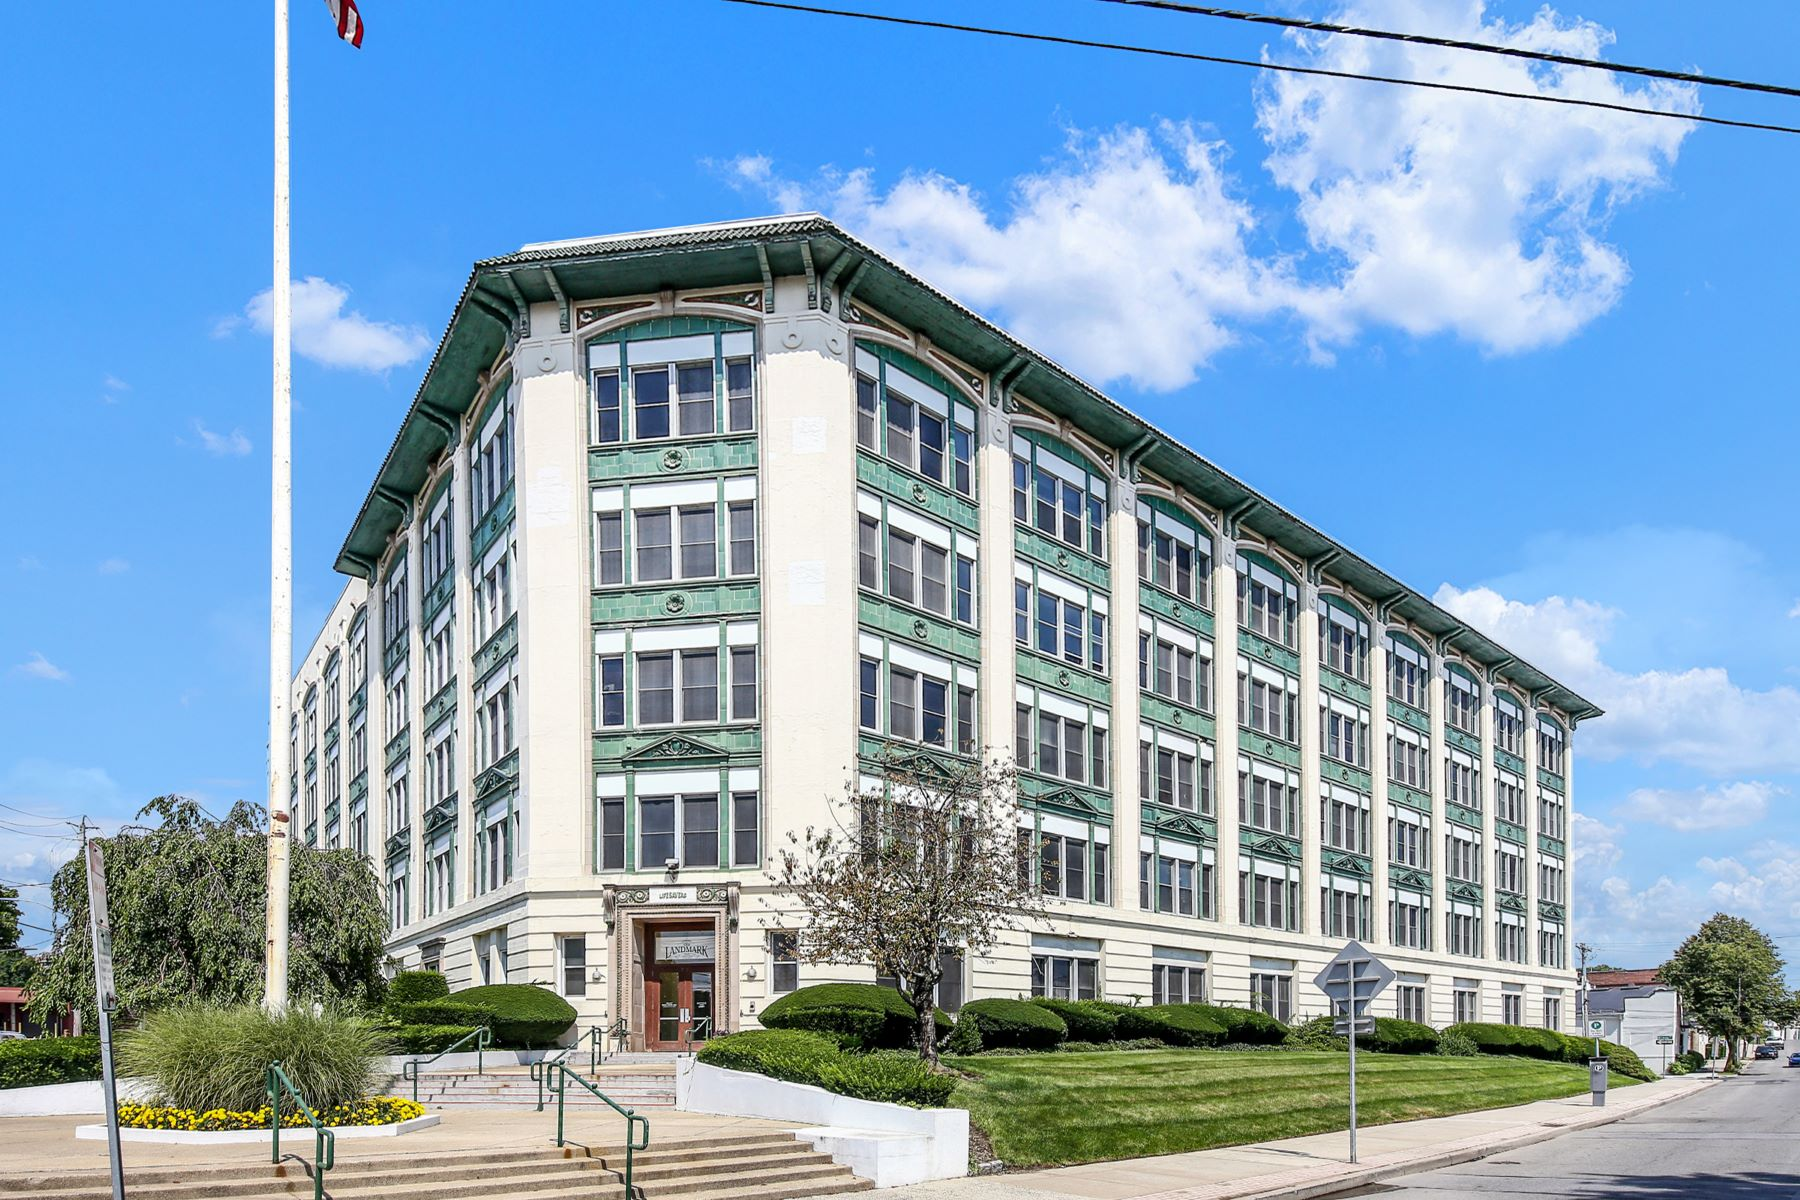 Apartments for Active at 1 Landmark Square 610 Port Chester, New York 10573 United States